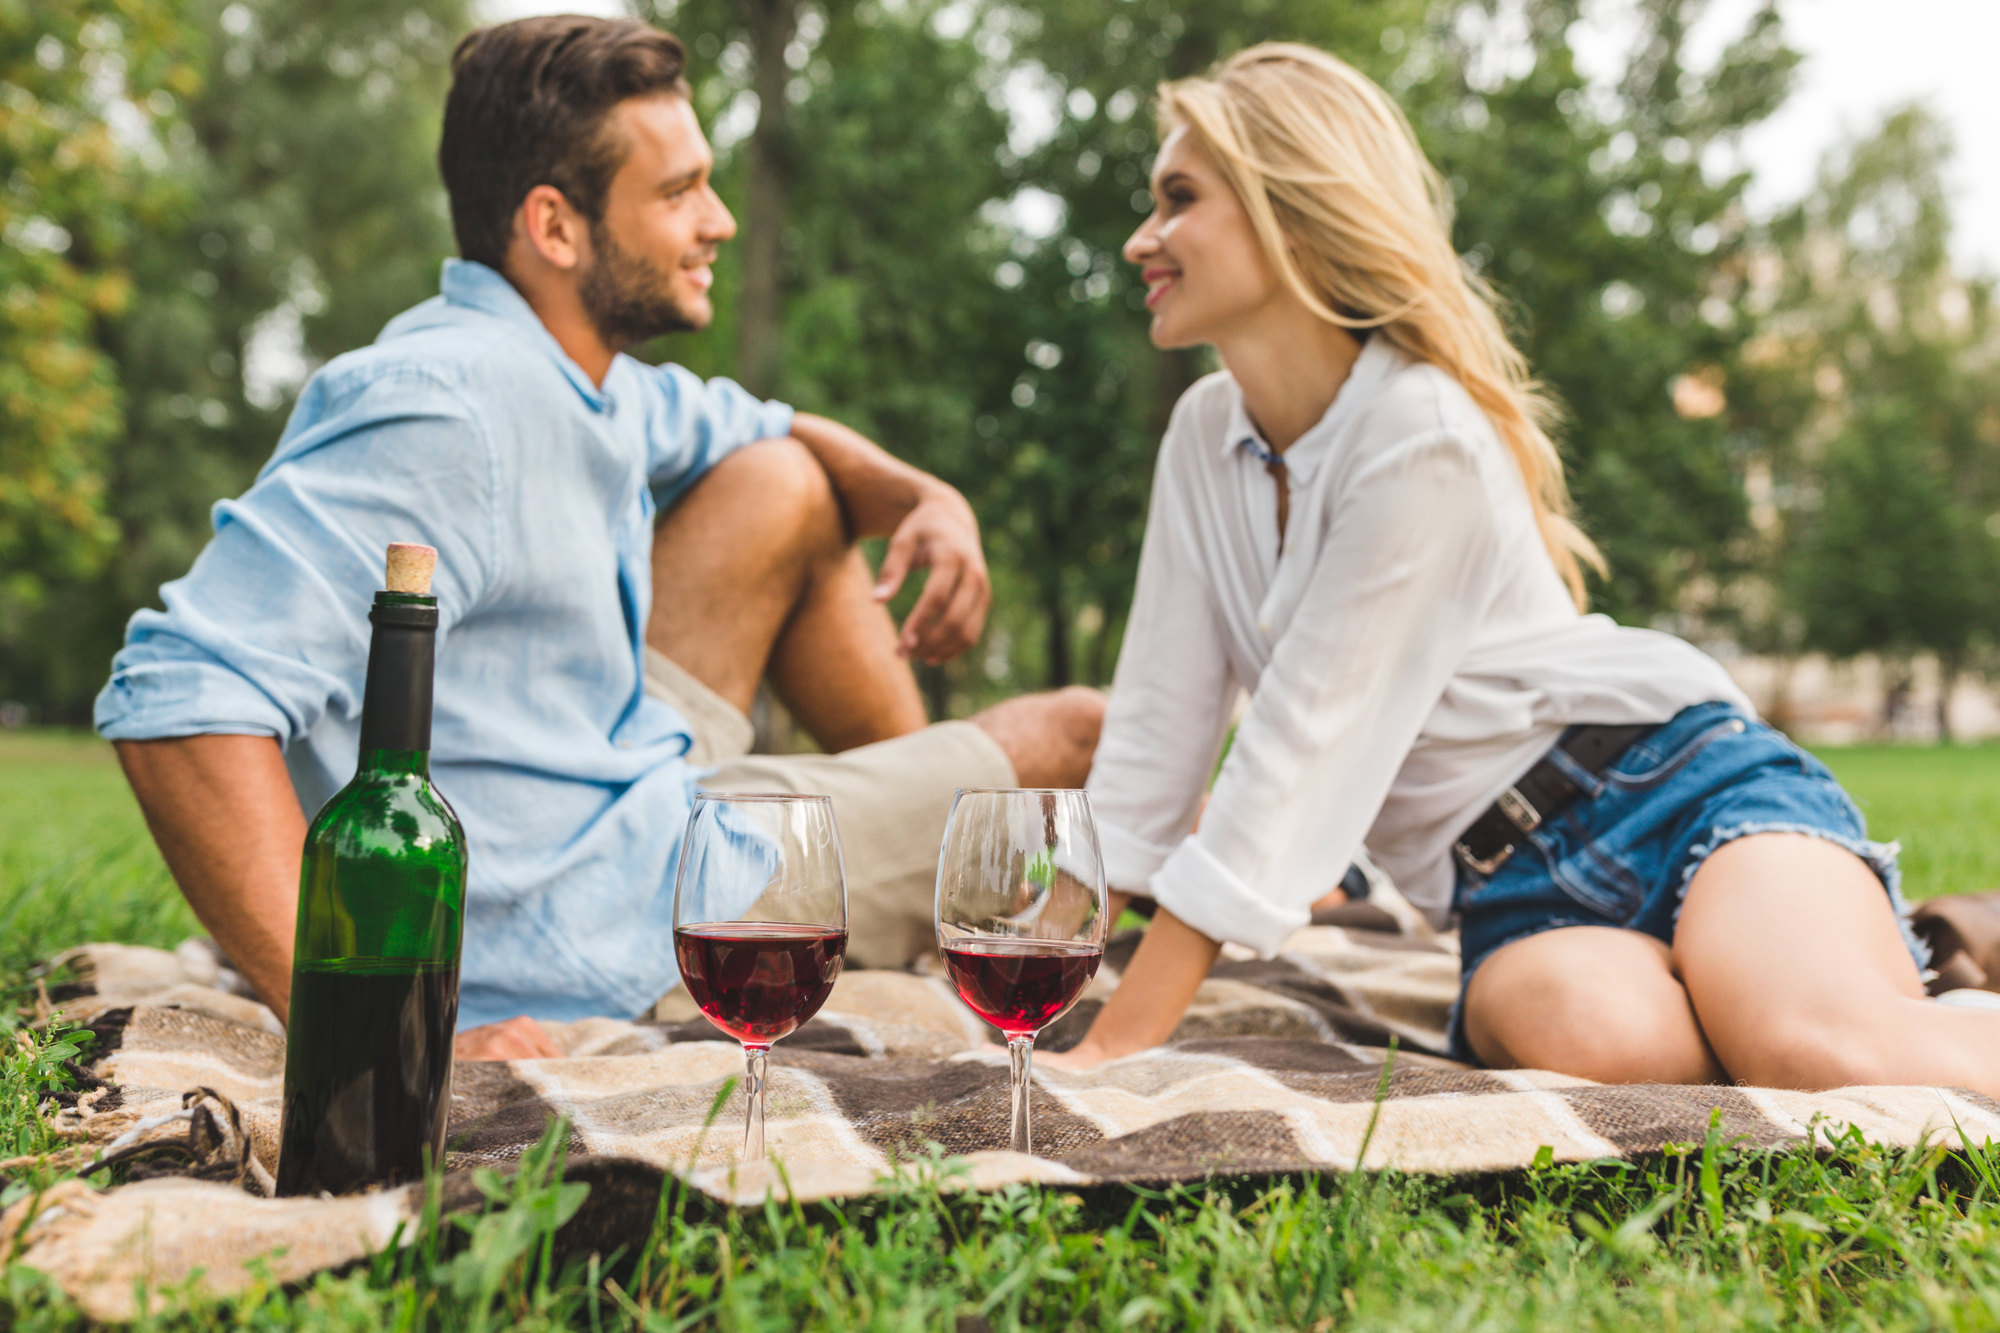 picnic date style